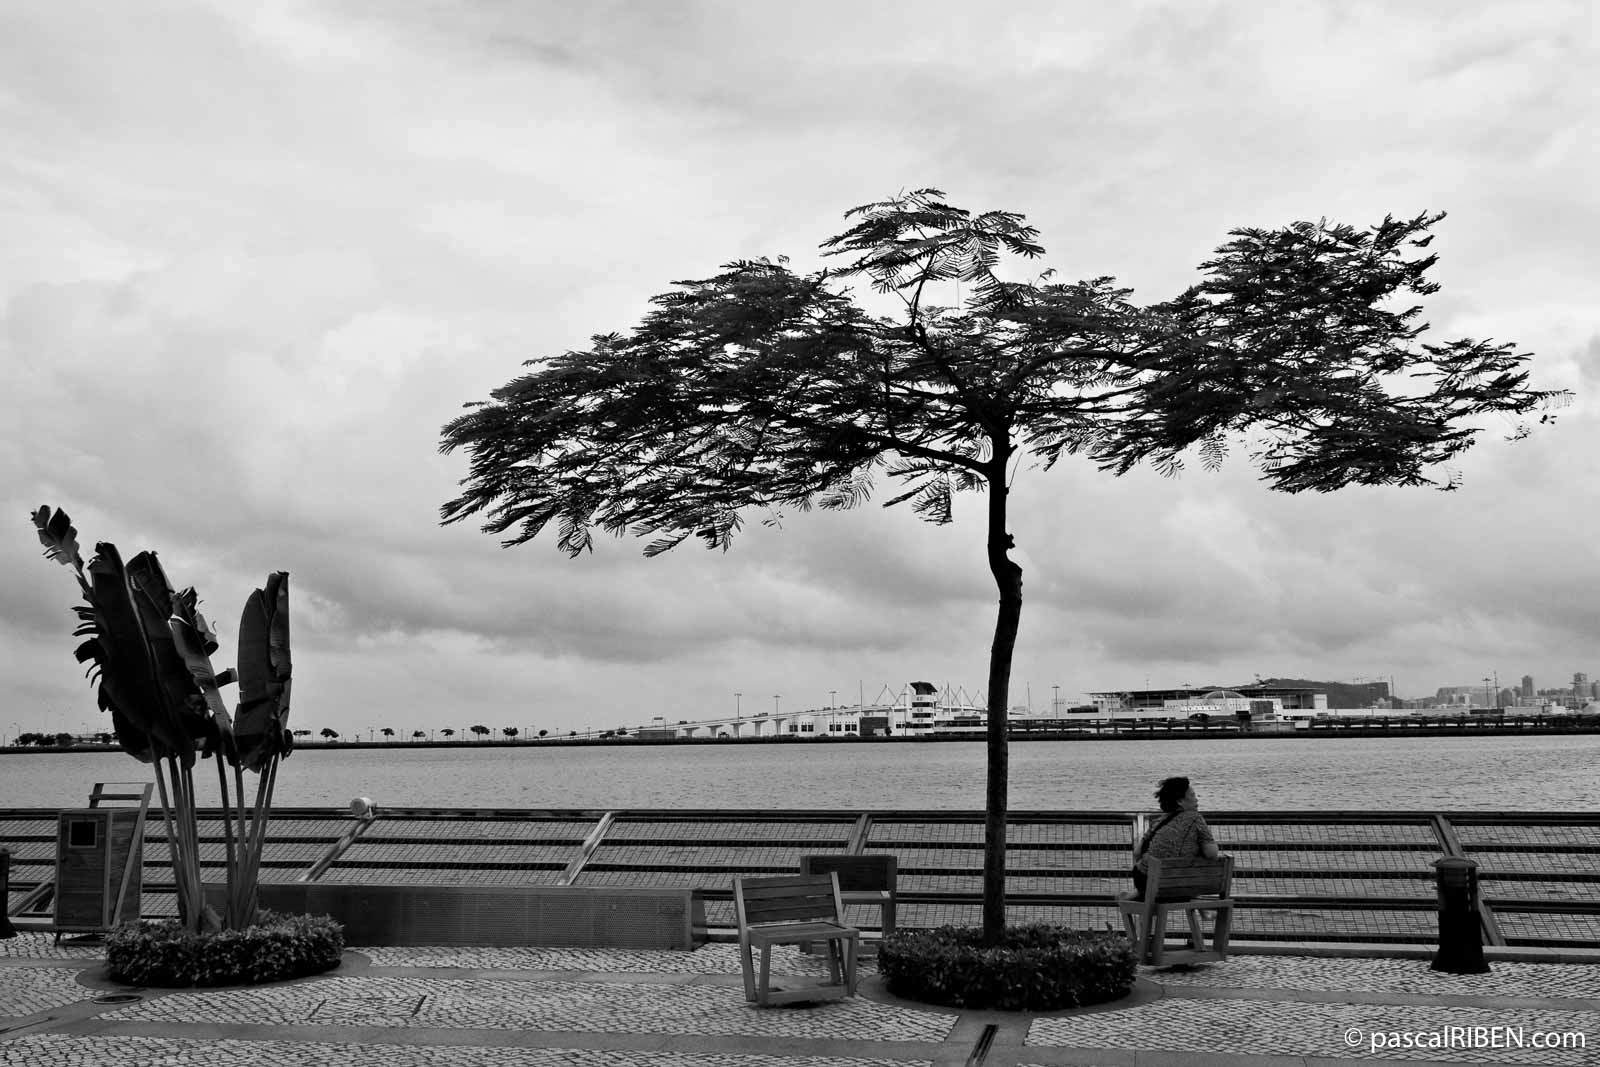 Tree and Woman in Front of the Reservoir, Macau, China, 2010